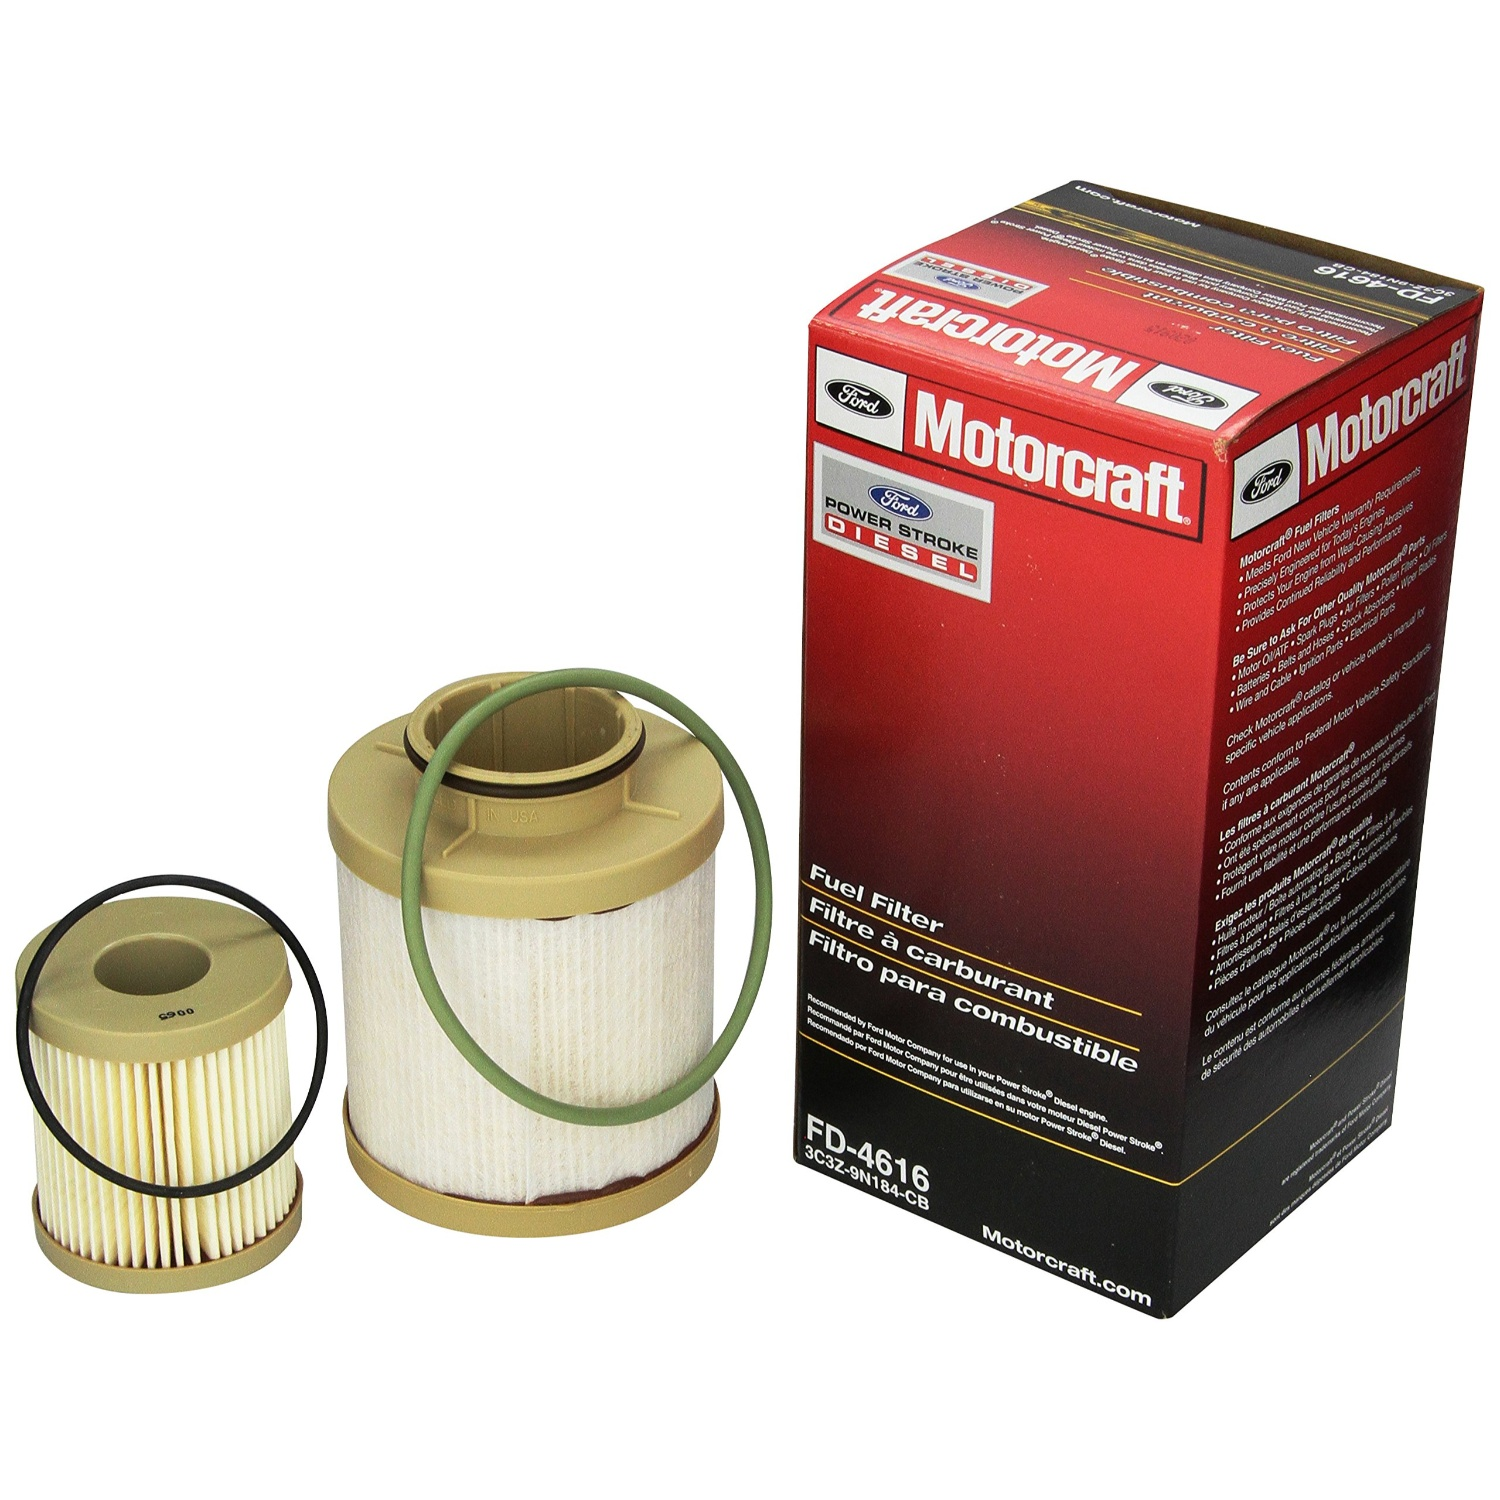 6.0L Powerstroke Fuel Filter Kit For 2003-2006 Ford F Series Replaces FD4616